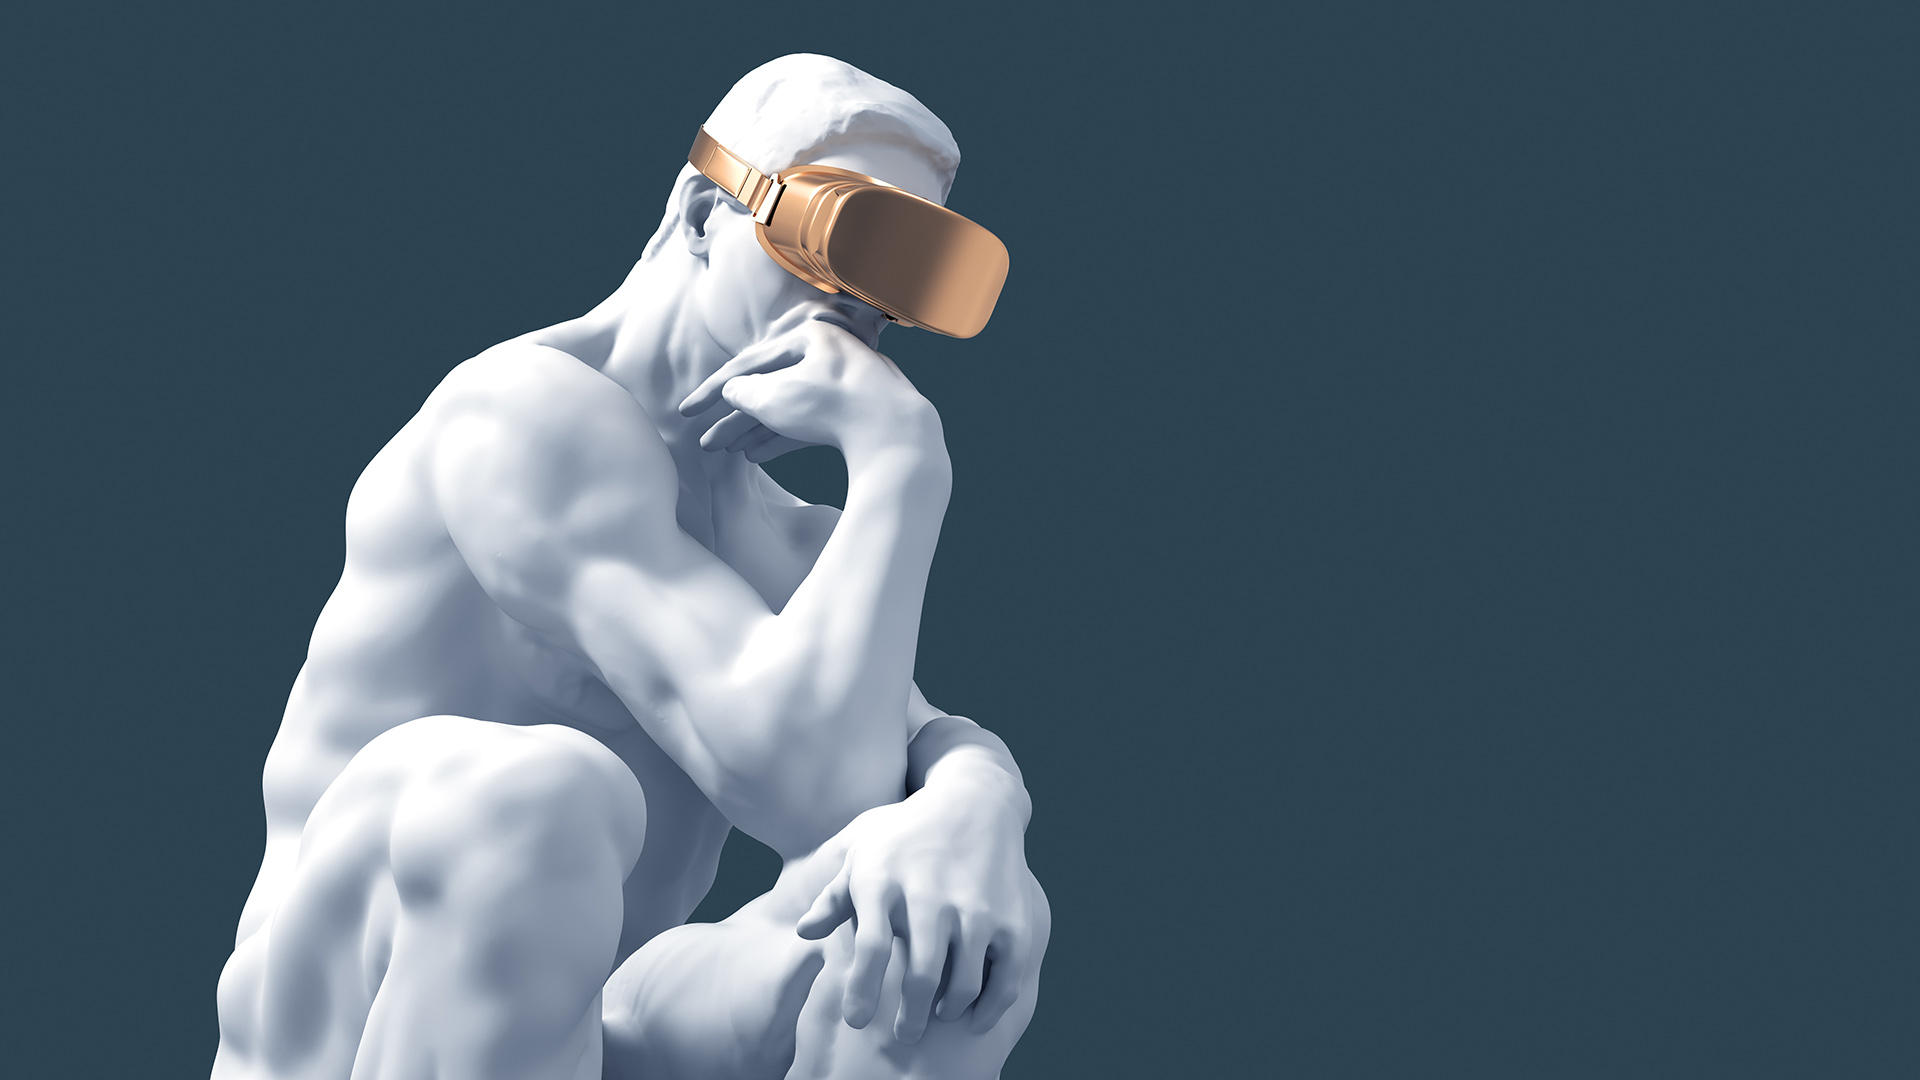 Sculpture Thinker With Golden VR Glasses for Experience Transformation